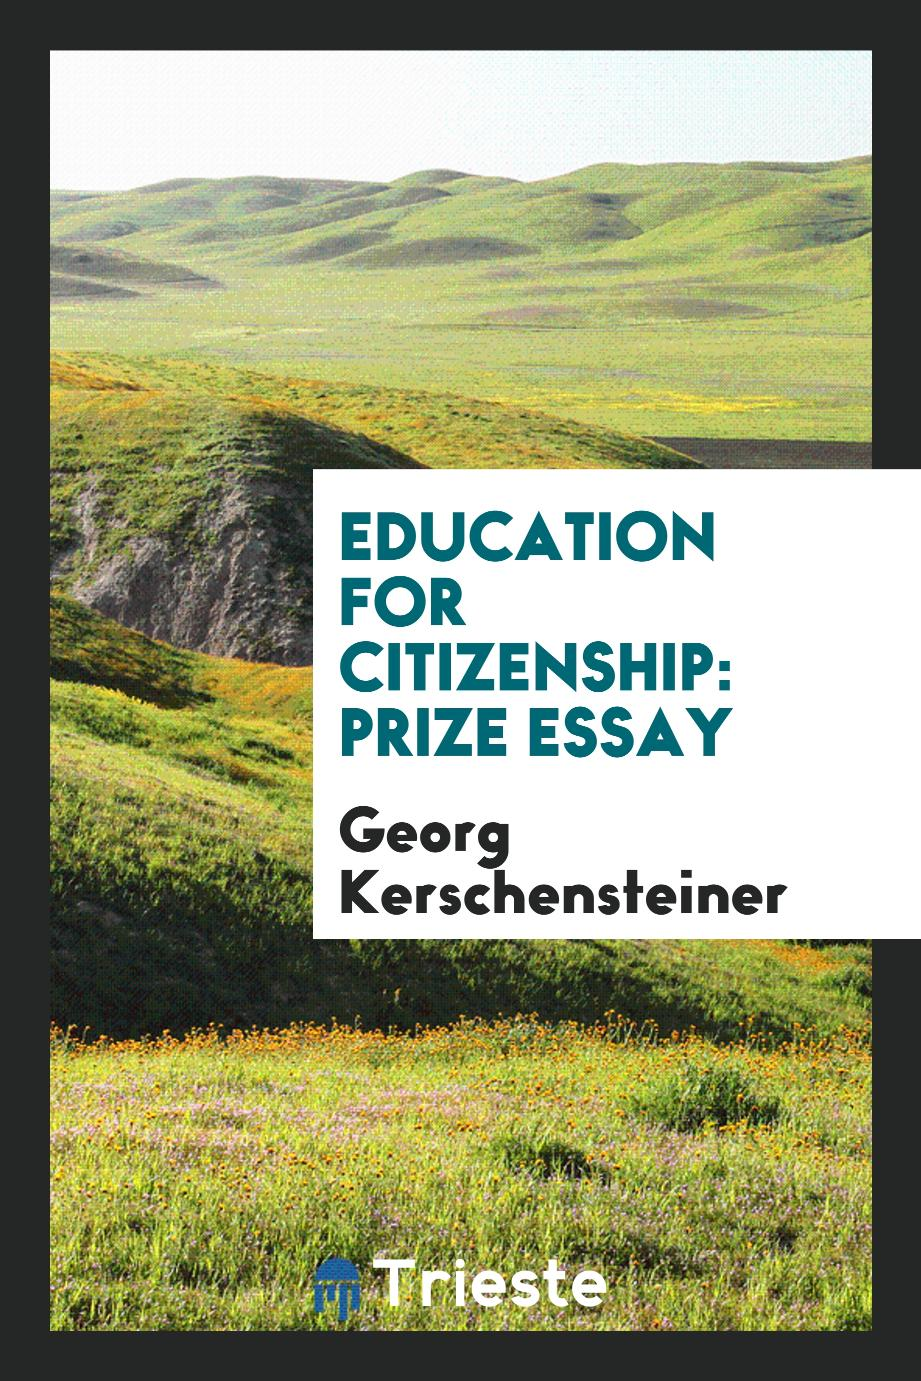 Education for Citizenship: Prize Essay